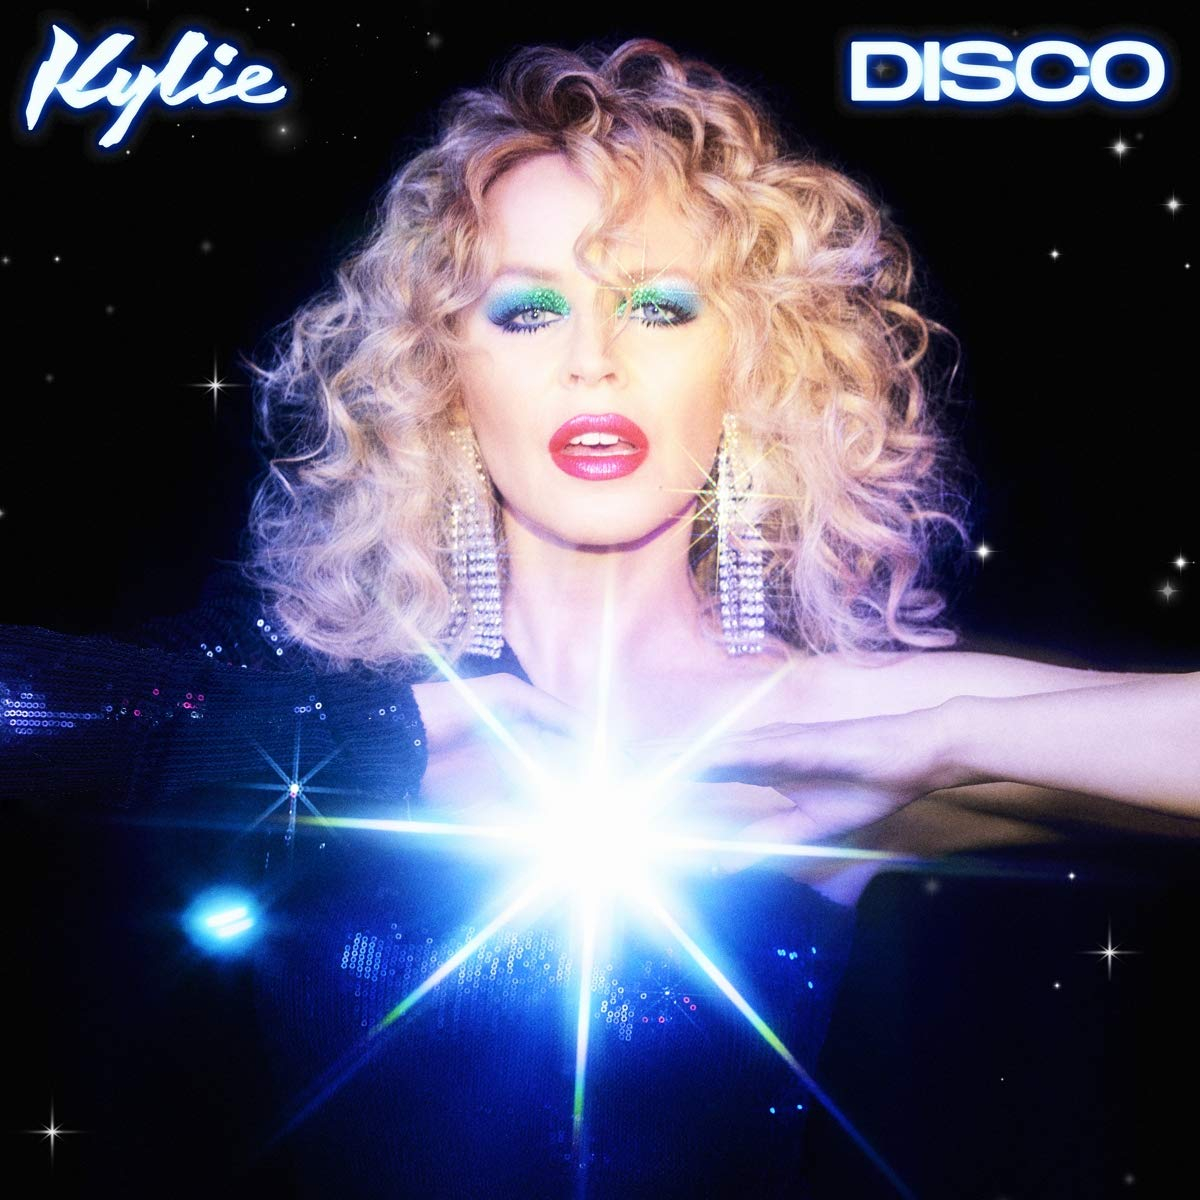 Kylie - Disco / Step Back In Time 11-2020